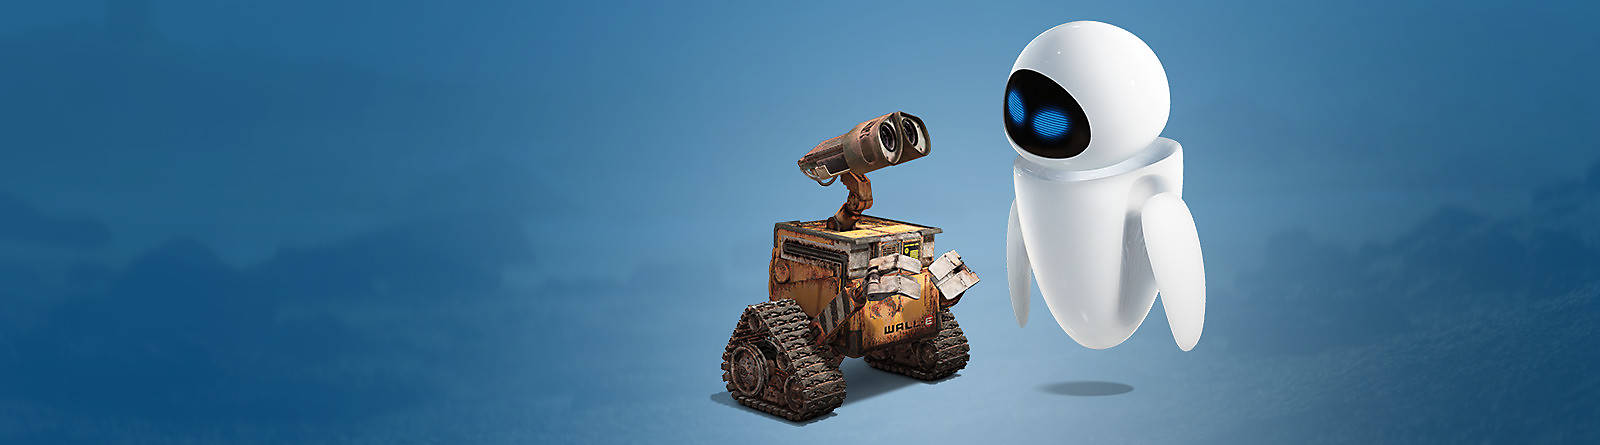 WALL-E Discover our Wall-E range of mugs, collectibles, toys and more